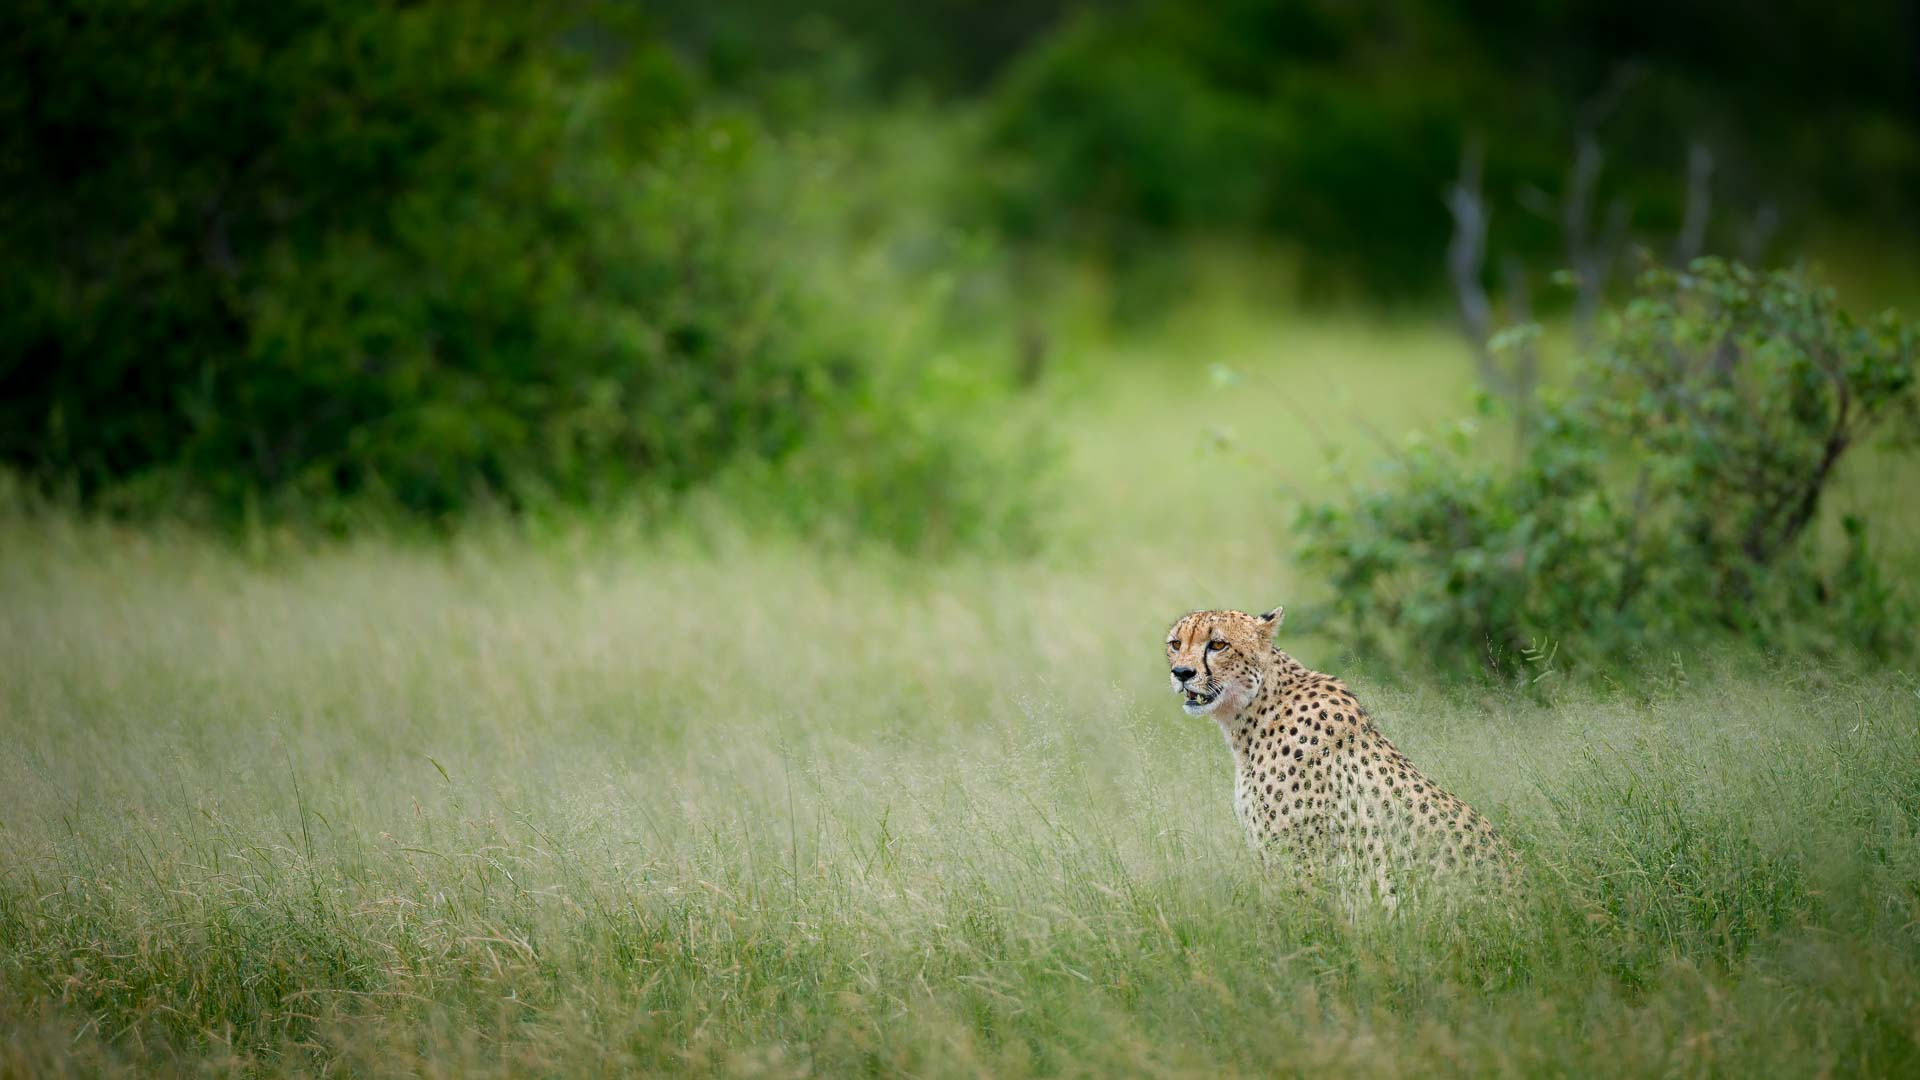 Tanda Tula - feature image. Chad Cocking. Cheetah